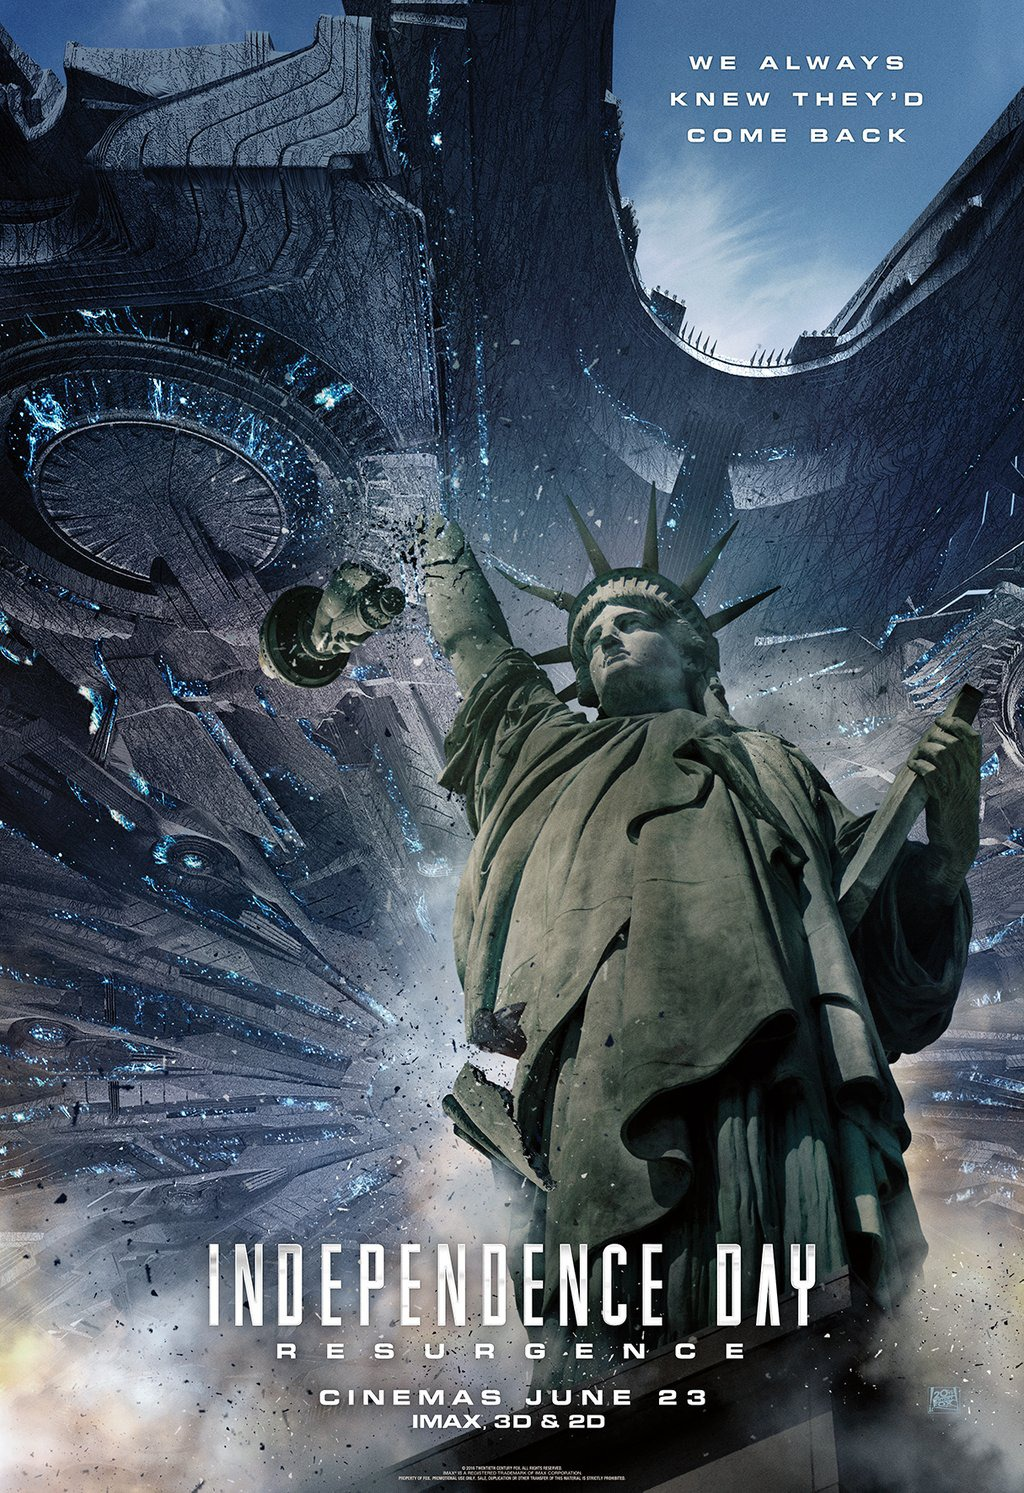 independence_day_resurgence_poster_2016_02.jpg